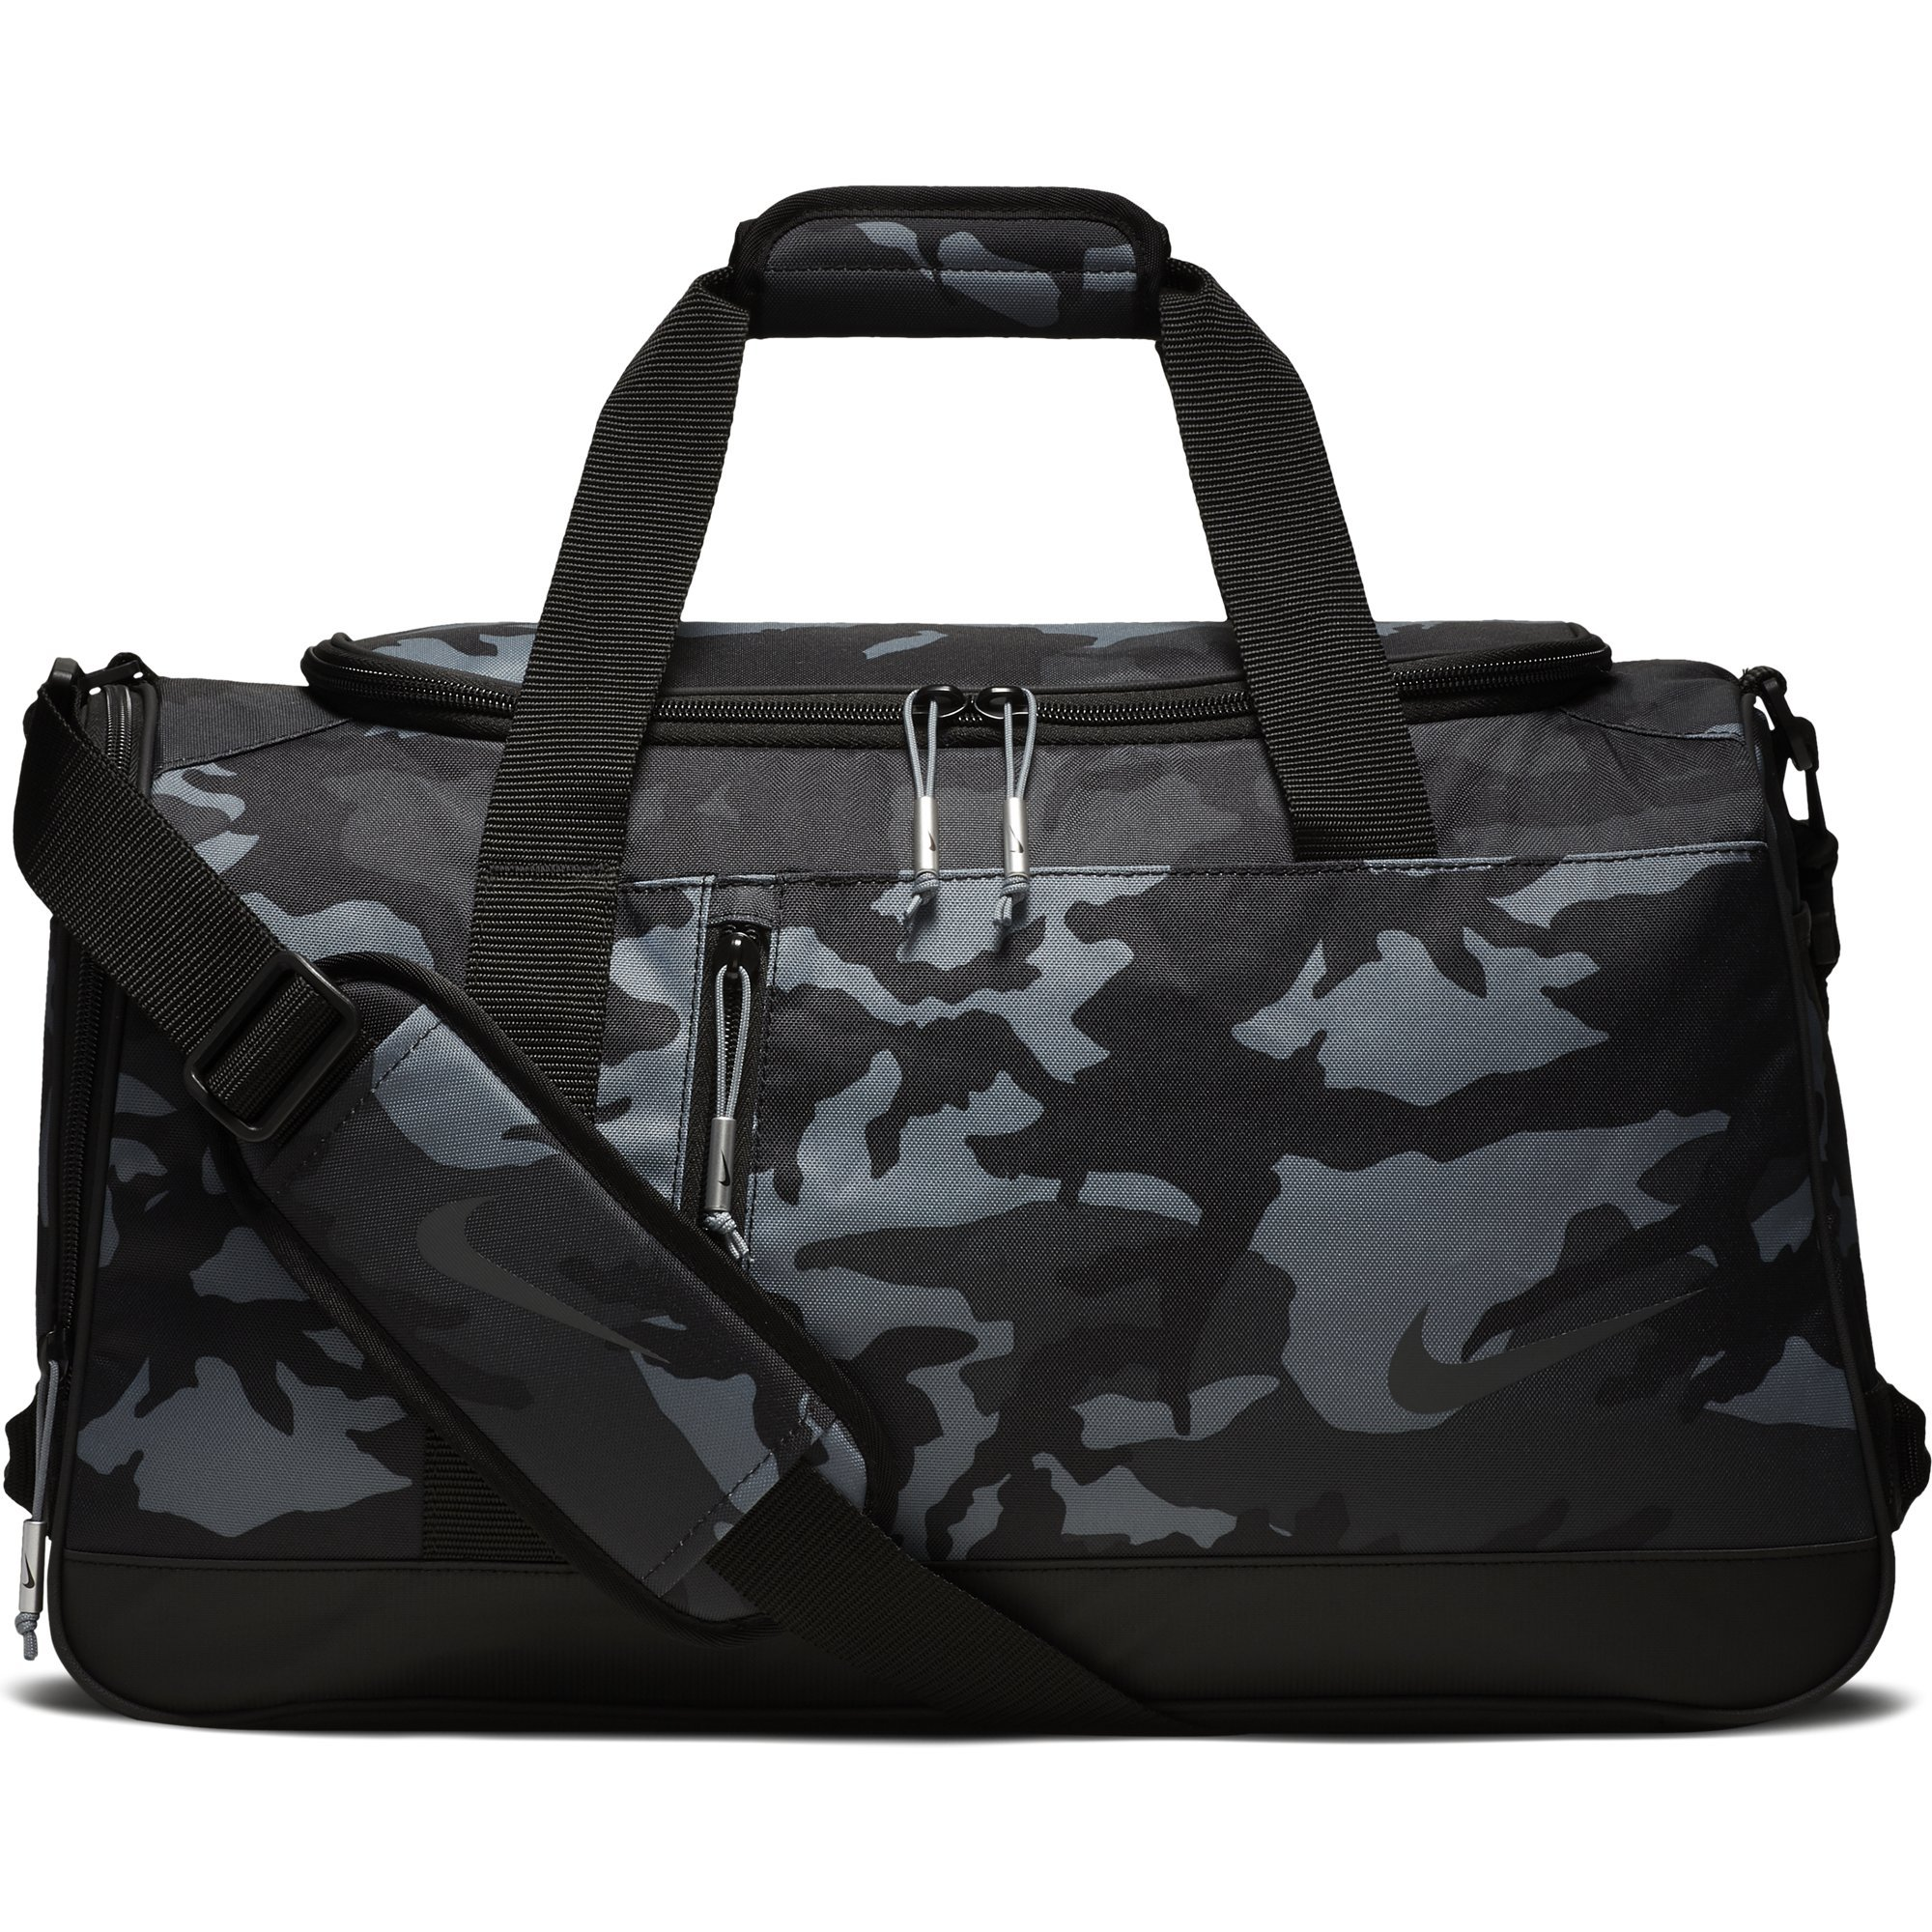 NIKE Sport All Over Print Golf Duffel Bag, Anthracite/Black/Anthracite by Nike